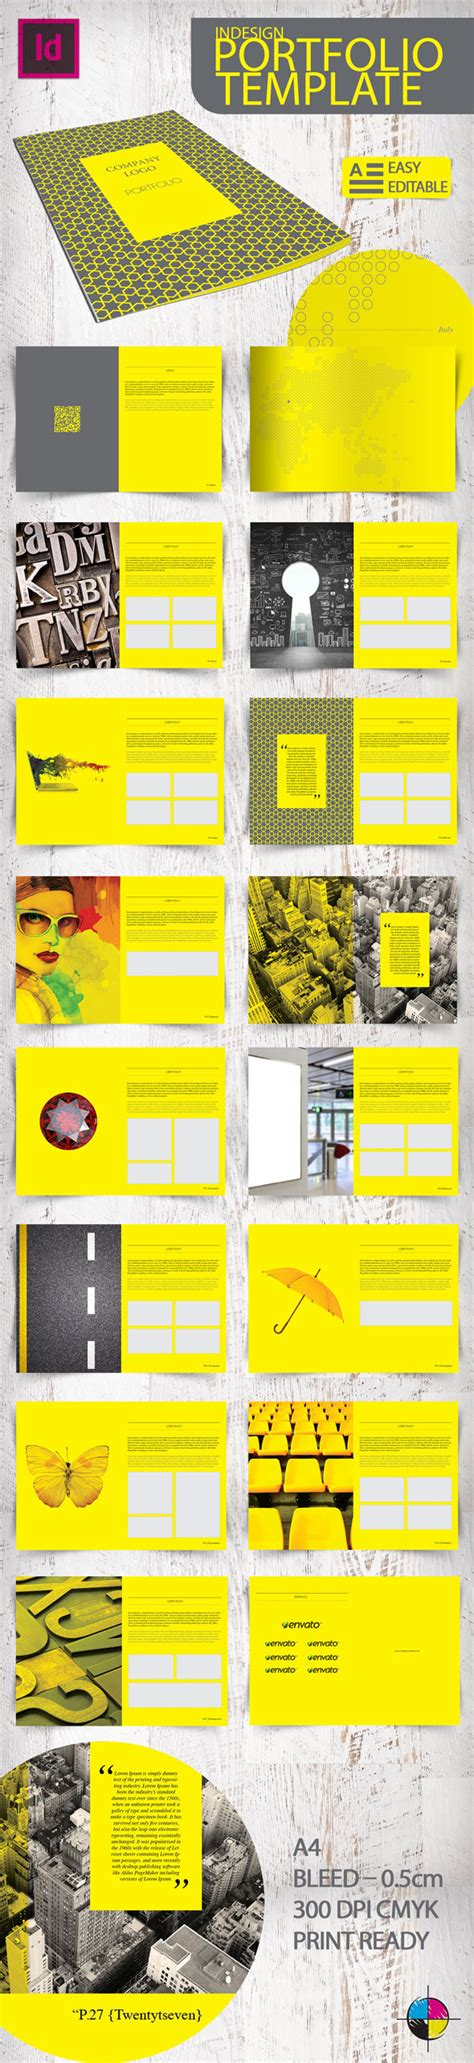 Indesign Portfolio Template On Behance Free Indesign Portfolio Templates